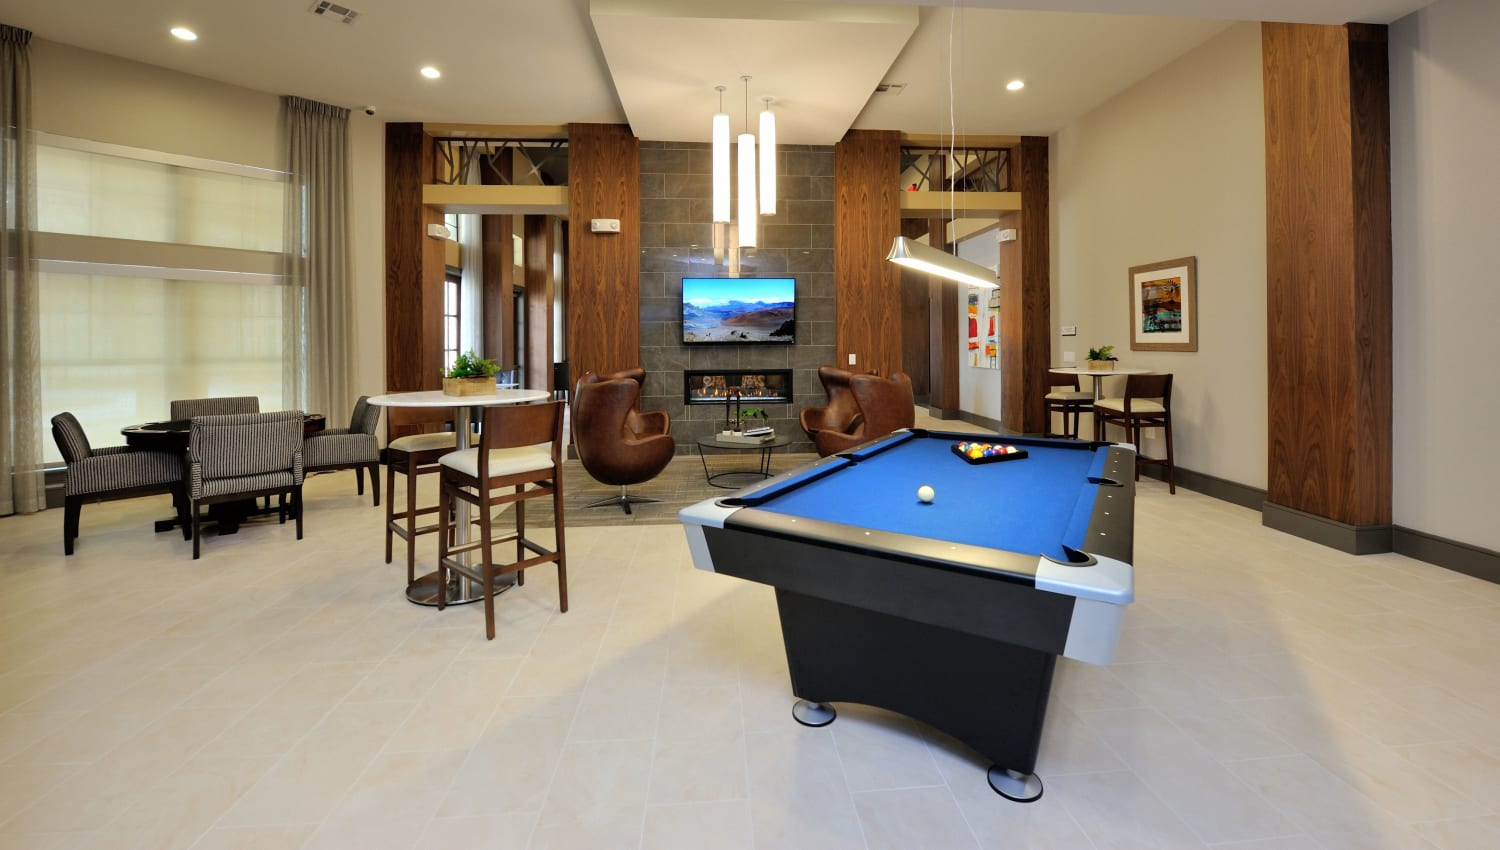 Billiards table and media room at Olympus Falcon Landing in Katy, Texas